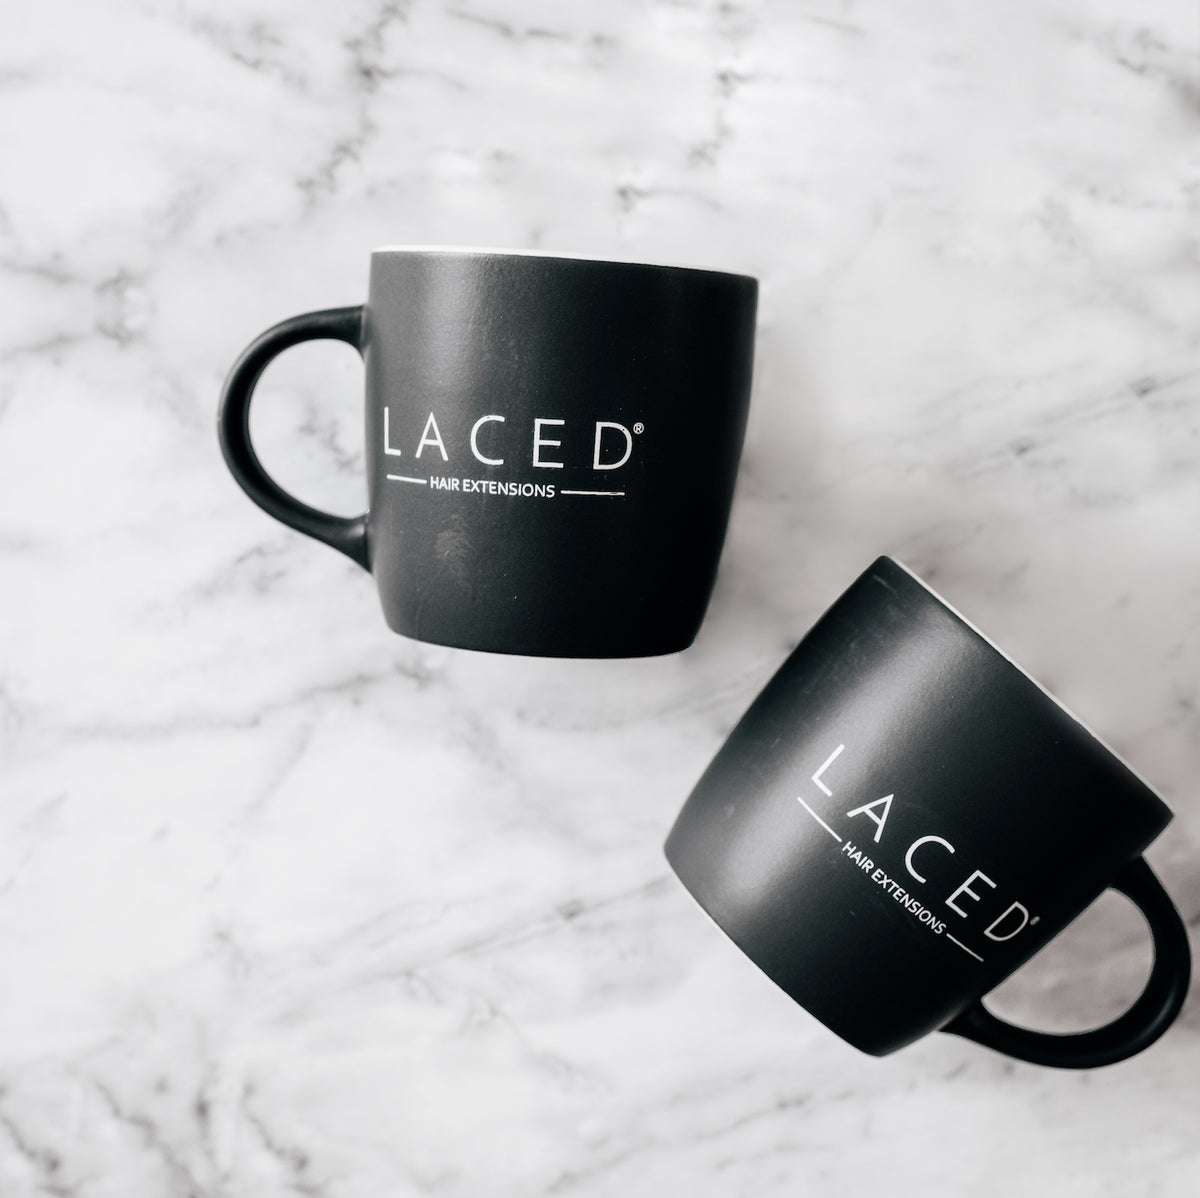 Merch - Laced Hair Mug